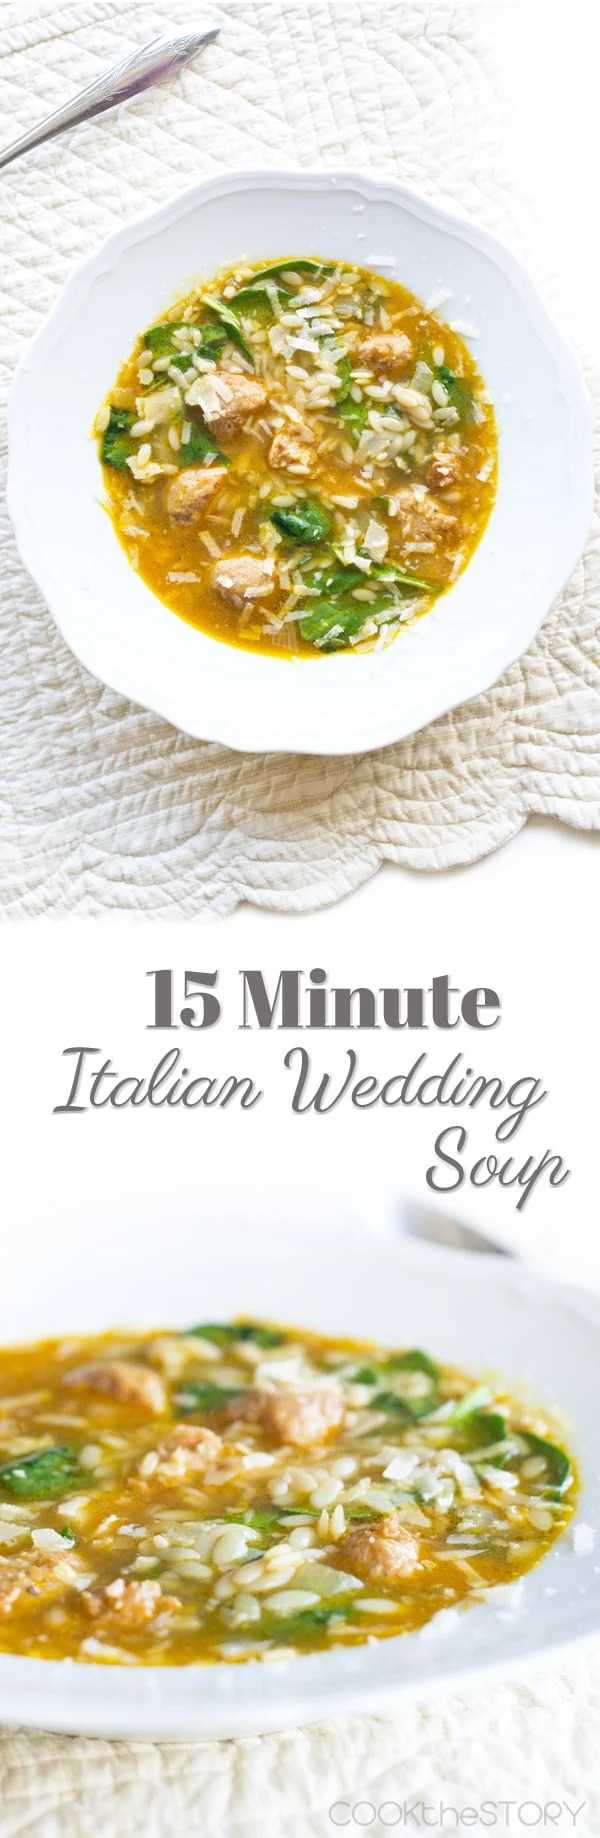 15 Minute Italian Wedding Soup